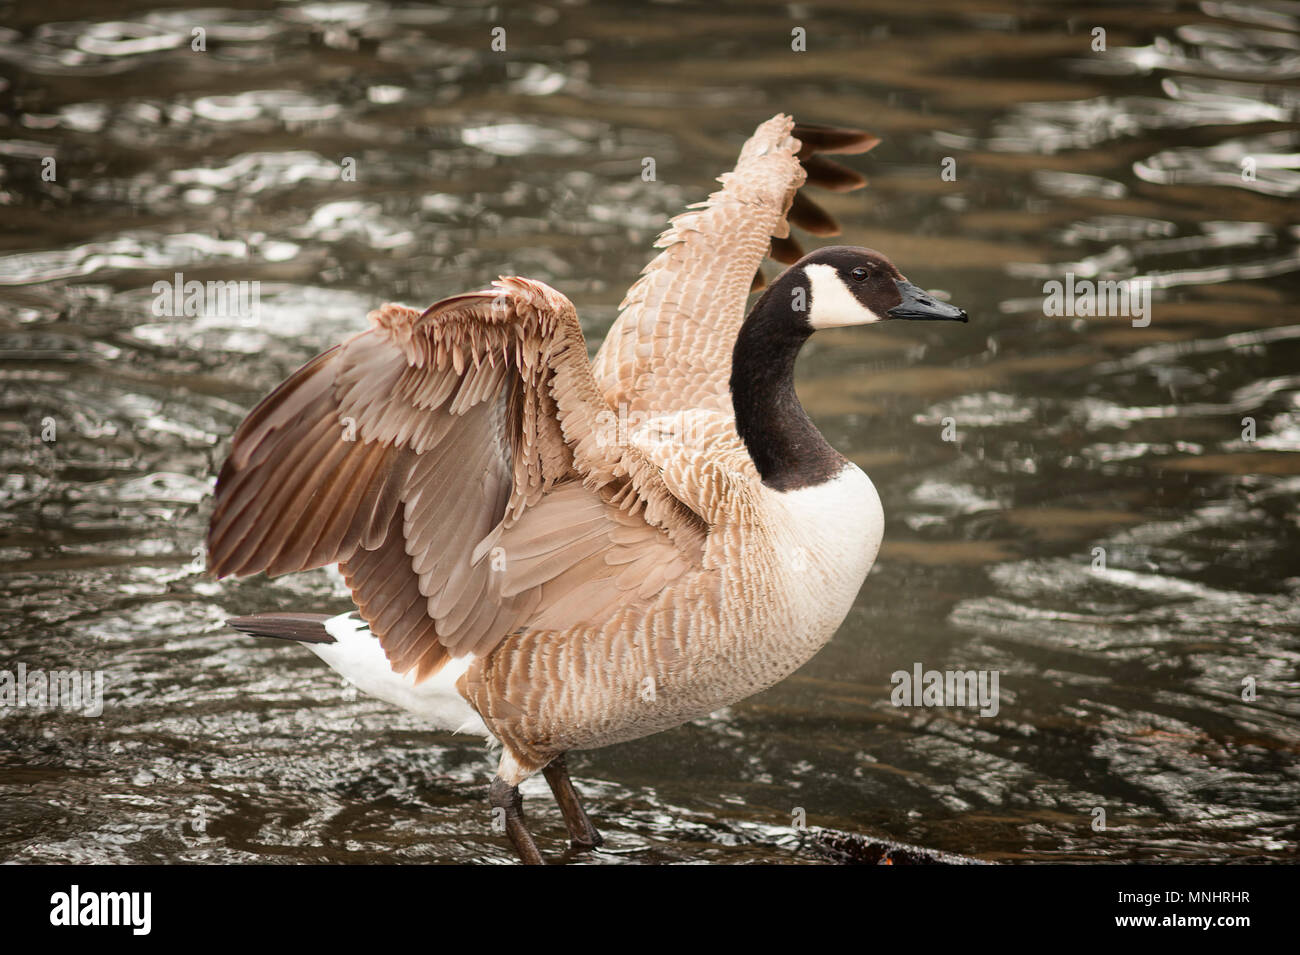 A Canada goose stand on the edge of a pond airing his expanded wings. - Stock Image